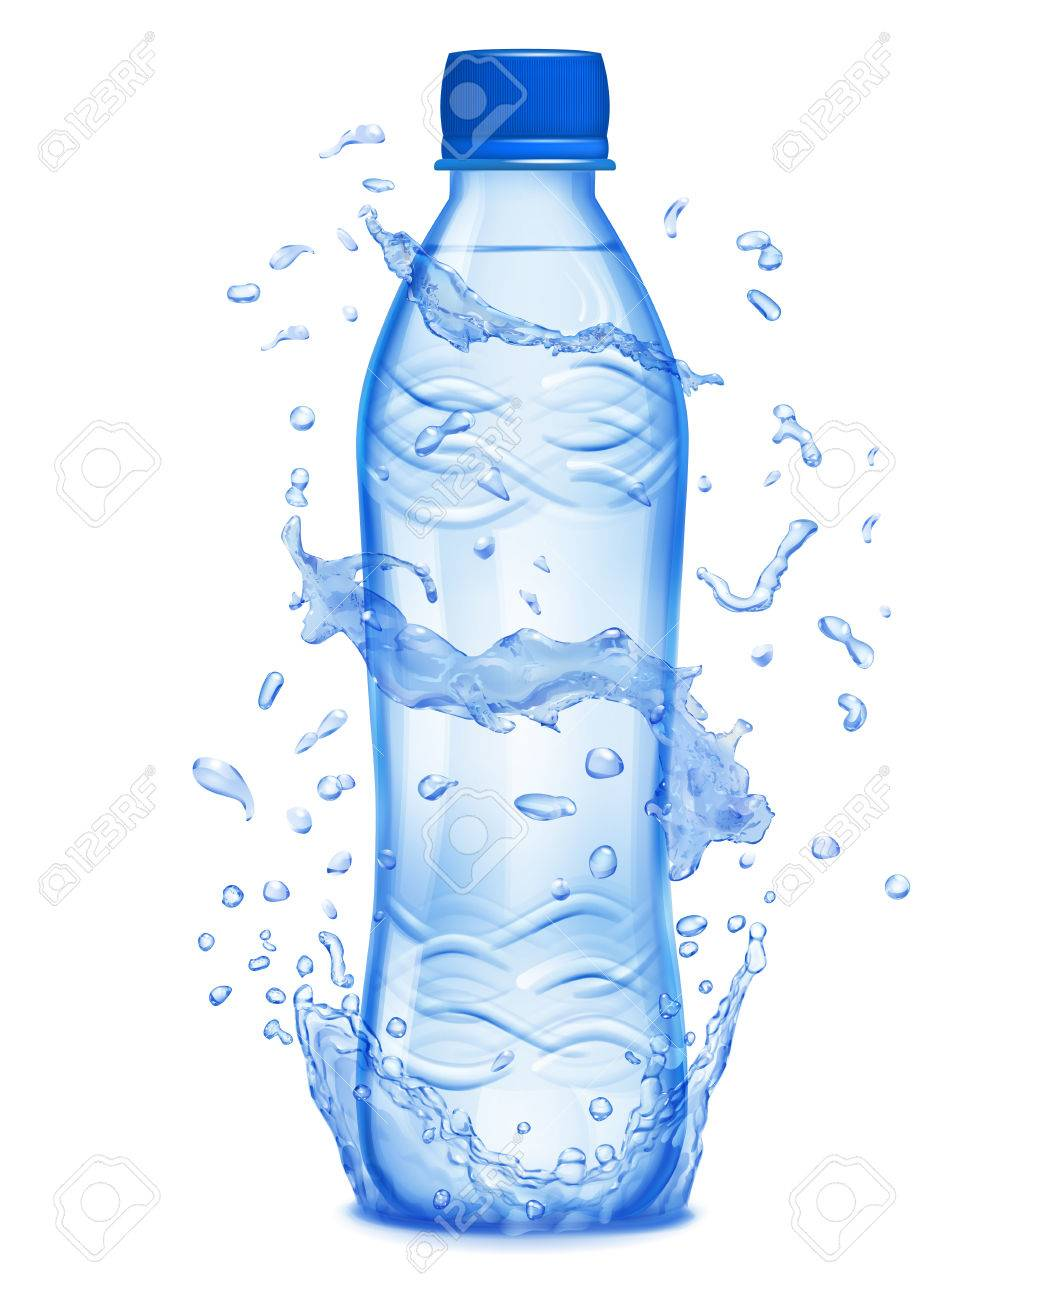 Water splashes in blue colors around a plastic bottle